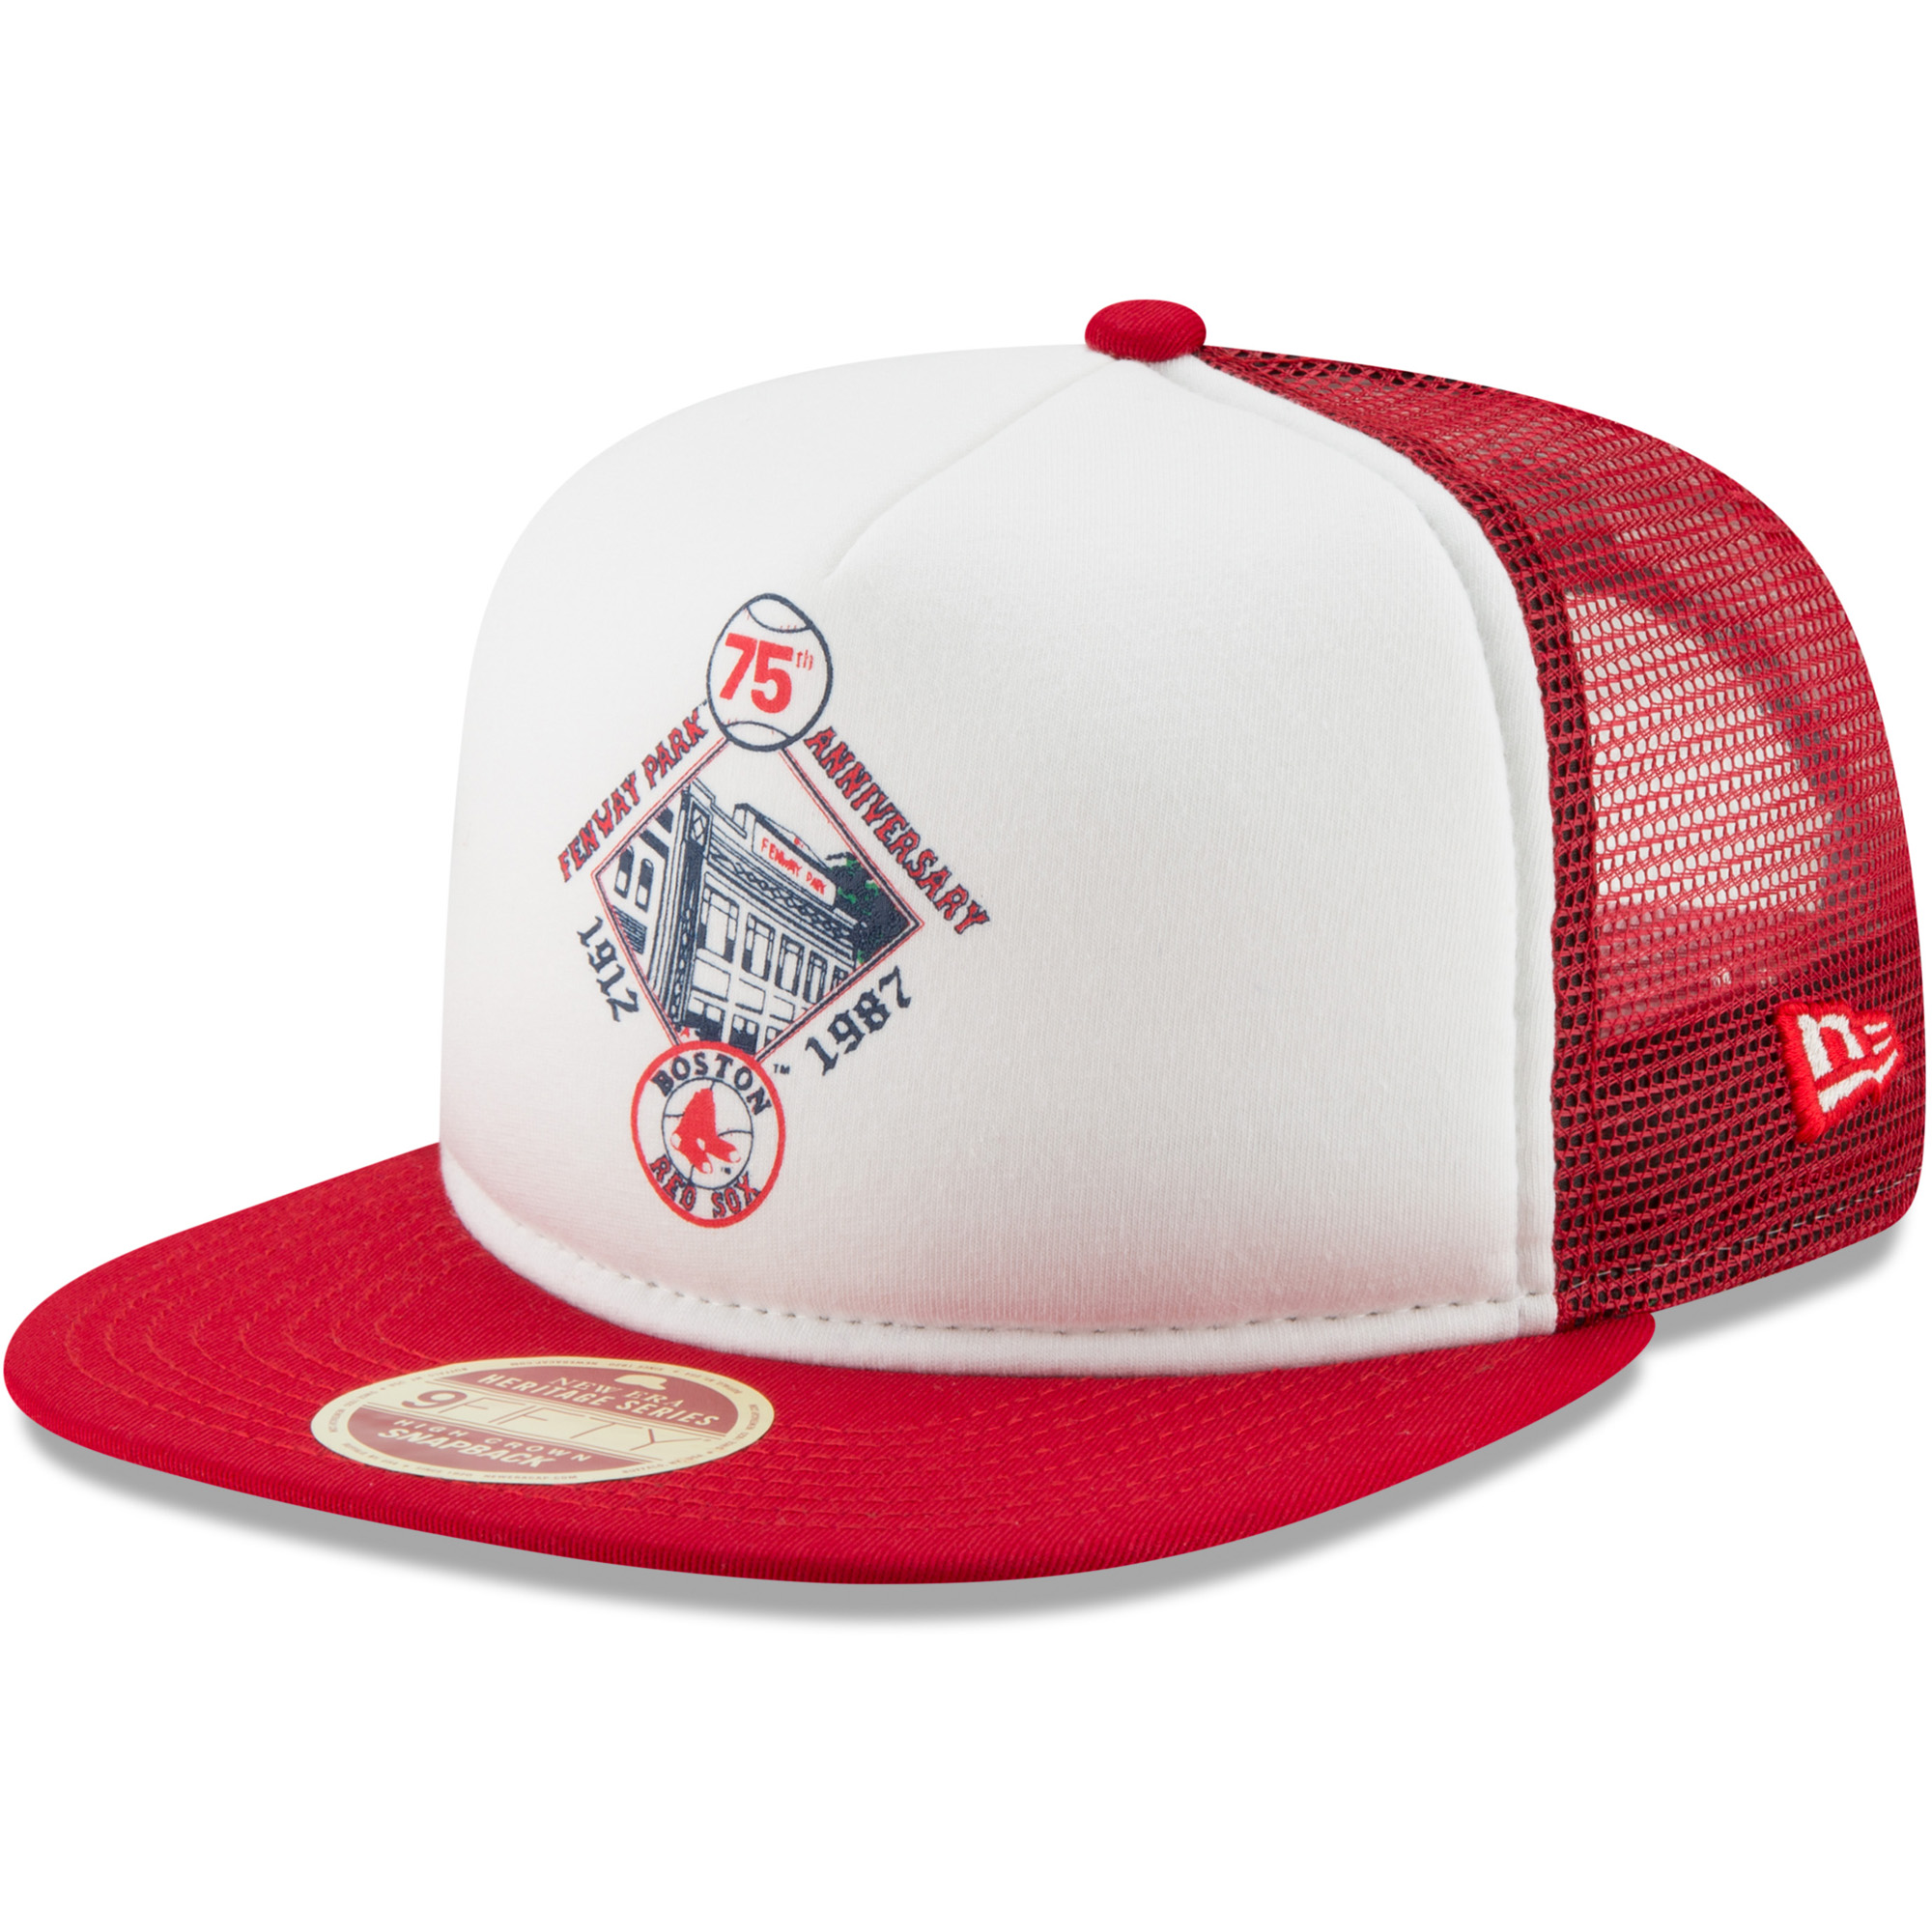 Boston Red Sox New Era Cooperstown Collection Foam Trucker 9FIFTY Snapback Adjustable Hat - White/Red - OSFA